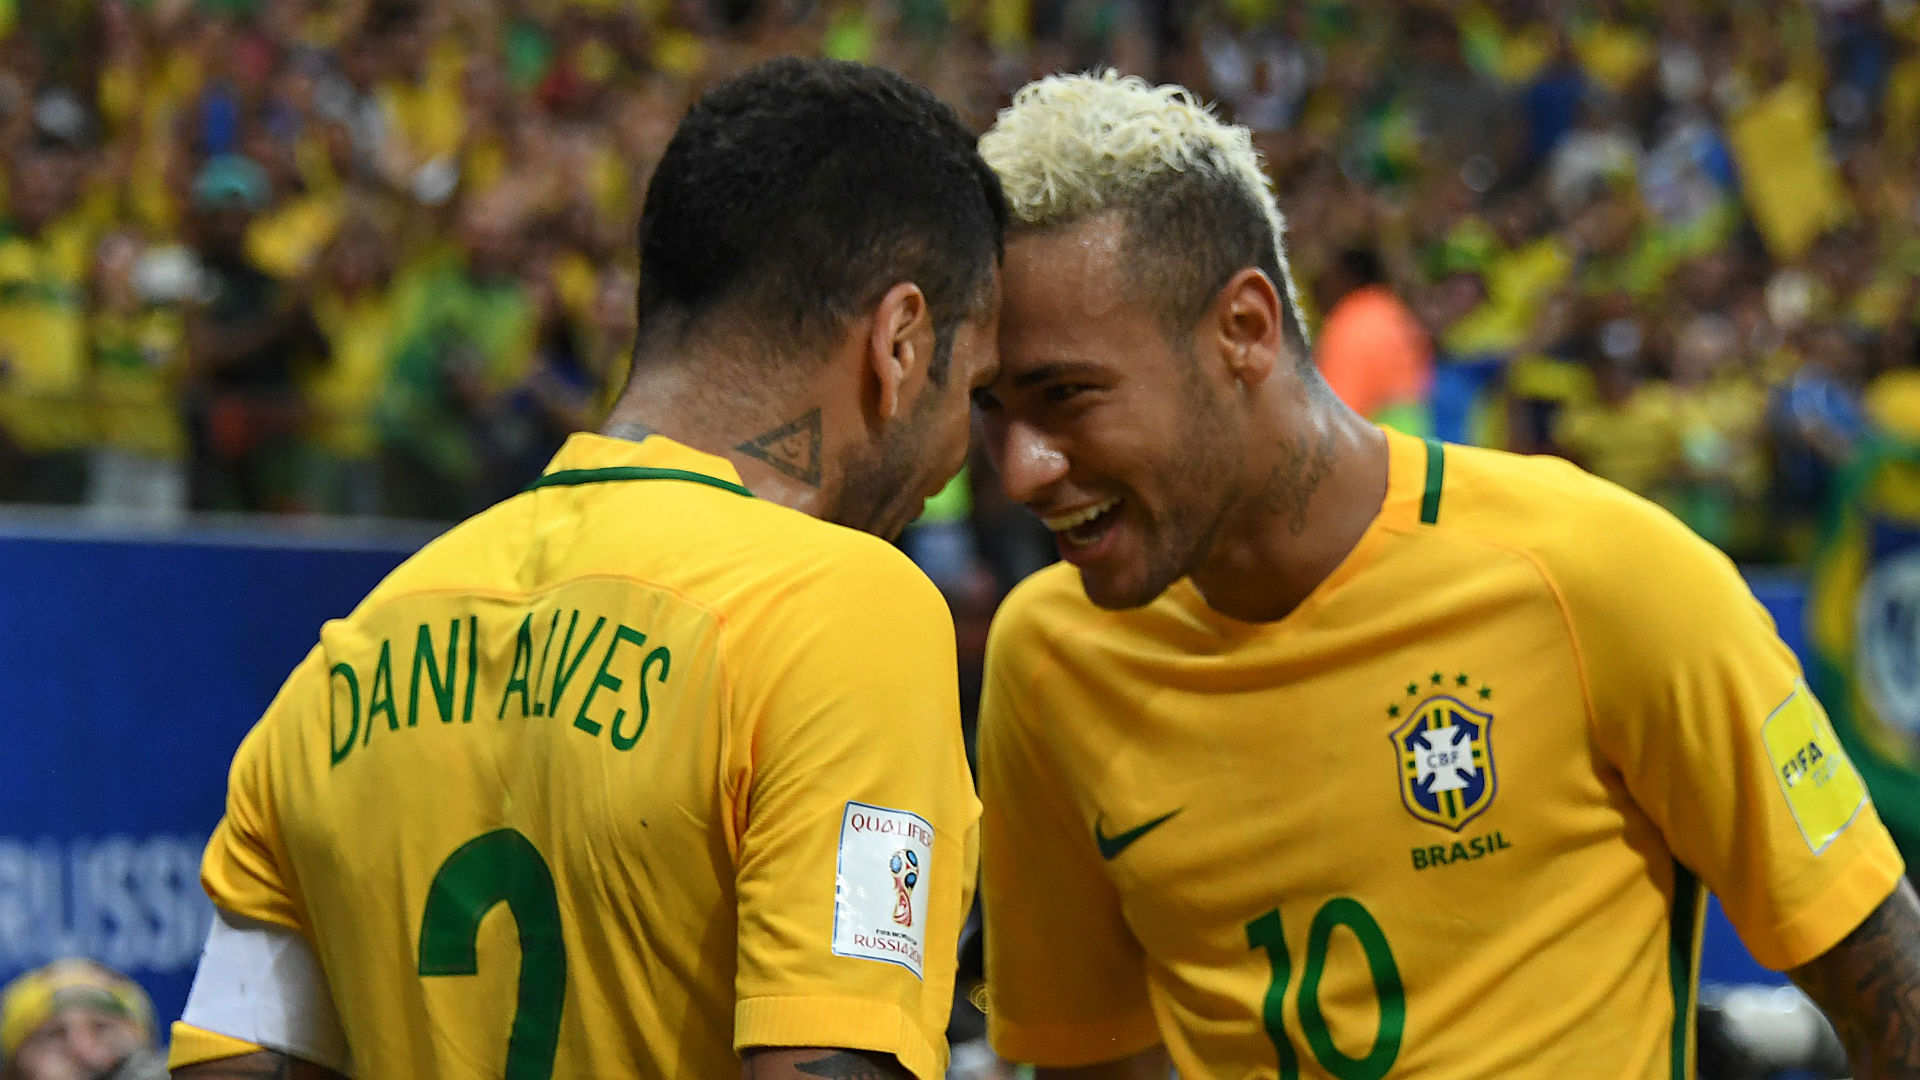 Dani Alves Urges Neymar To Be Brave And Join PSG